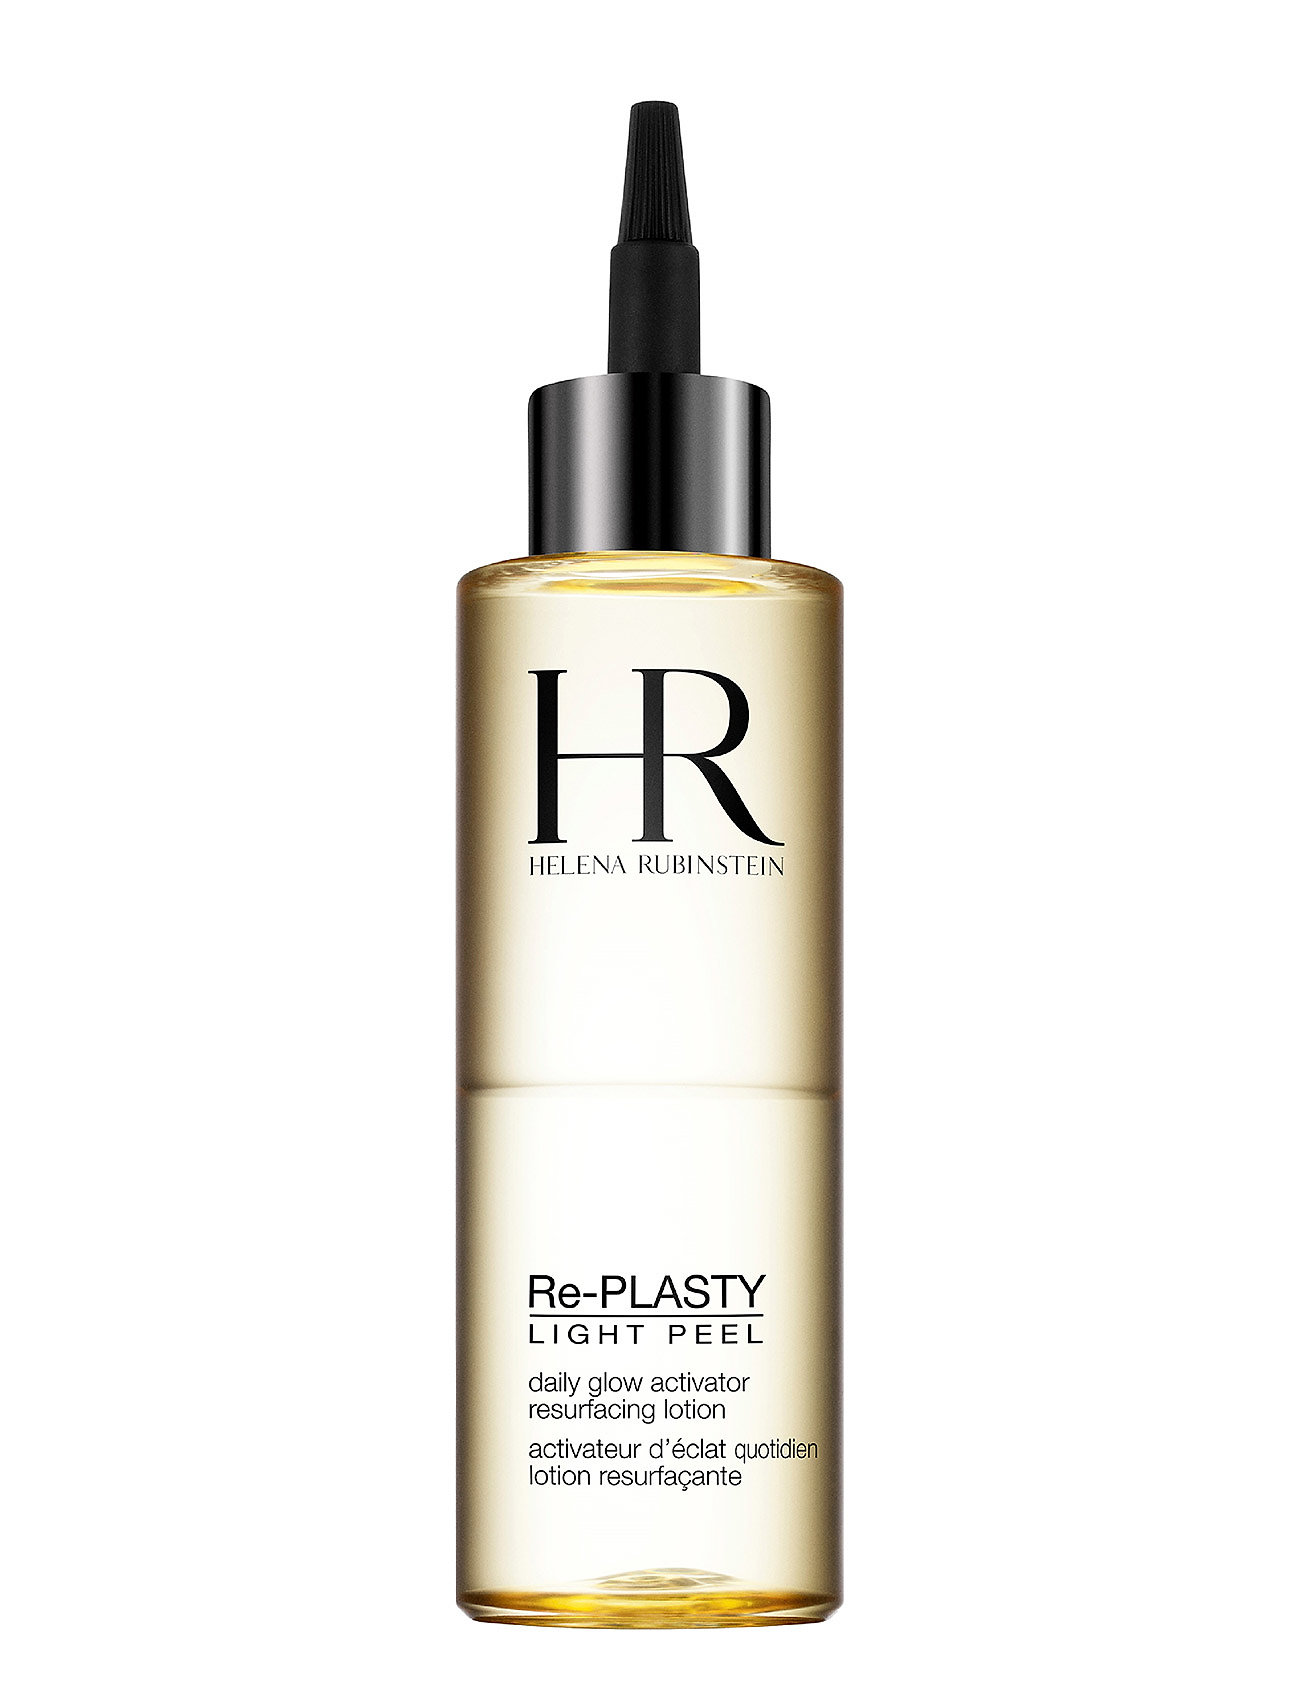 Image of Re-Plasty Light Peel Lotion 150 Ml Beauty WOMEN Skin Care Face Peelings Nude Helena Rubinstein (3251430973)